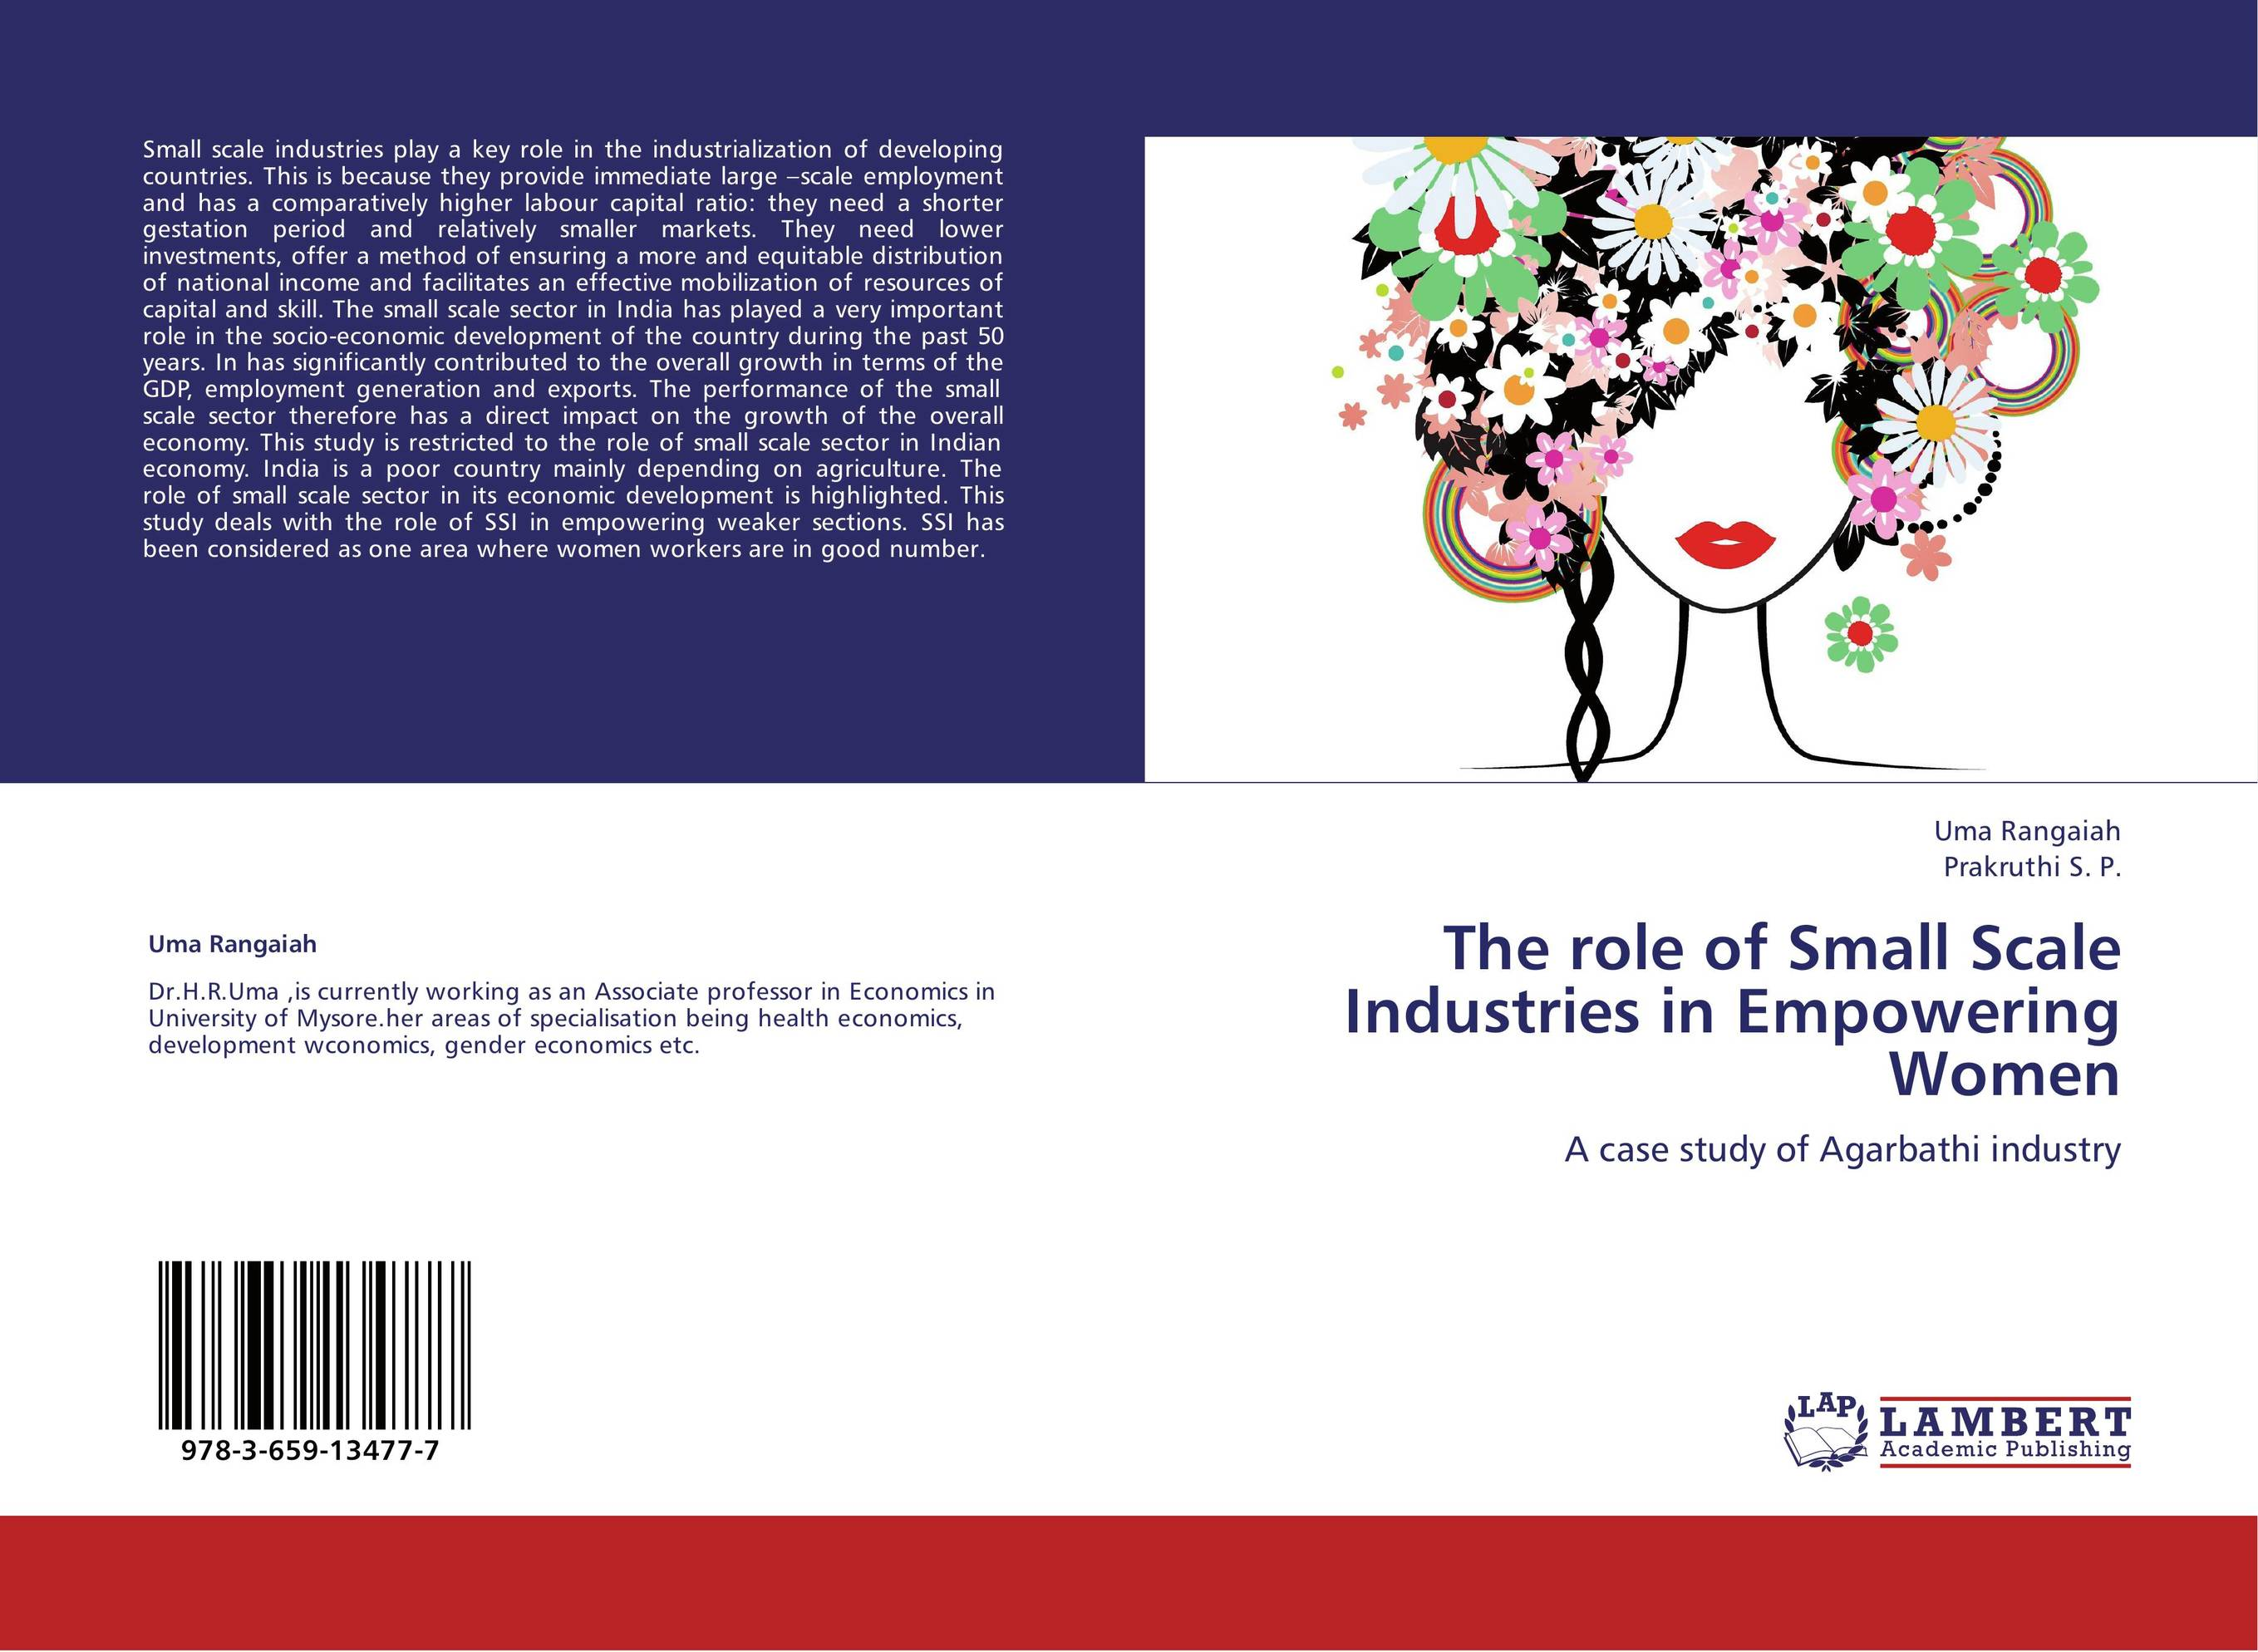 the important role played by small - scale industries in india essay Scale industries play a key role in our planned development with its advantages of low investment, high potential for employment generation, diversification of the industrial base and dispersal of industries to rural and semi urban areas.